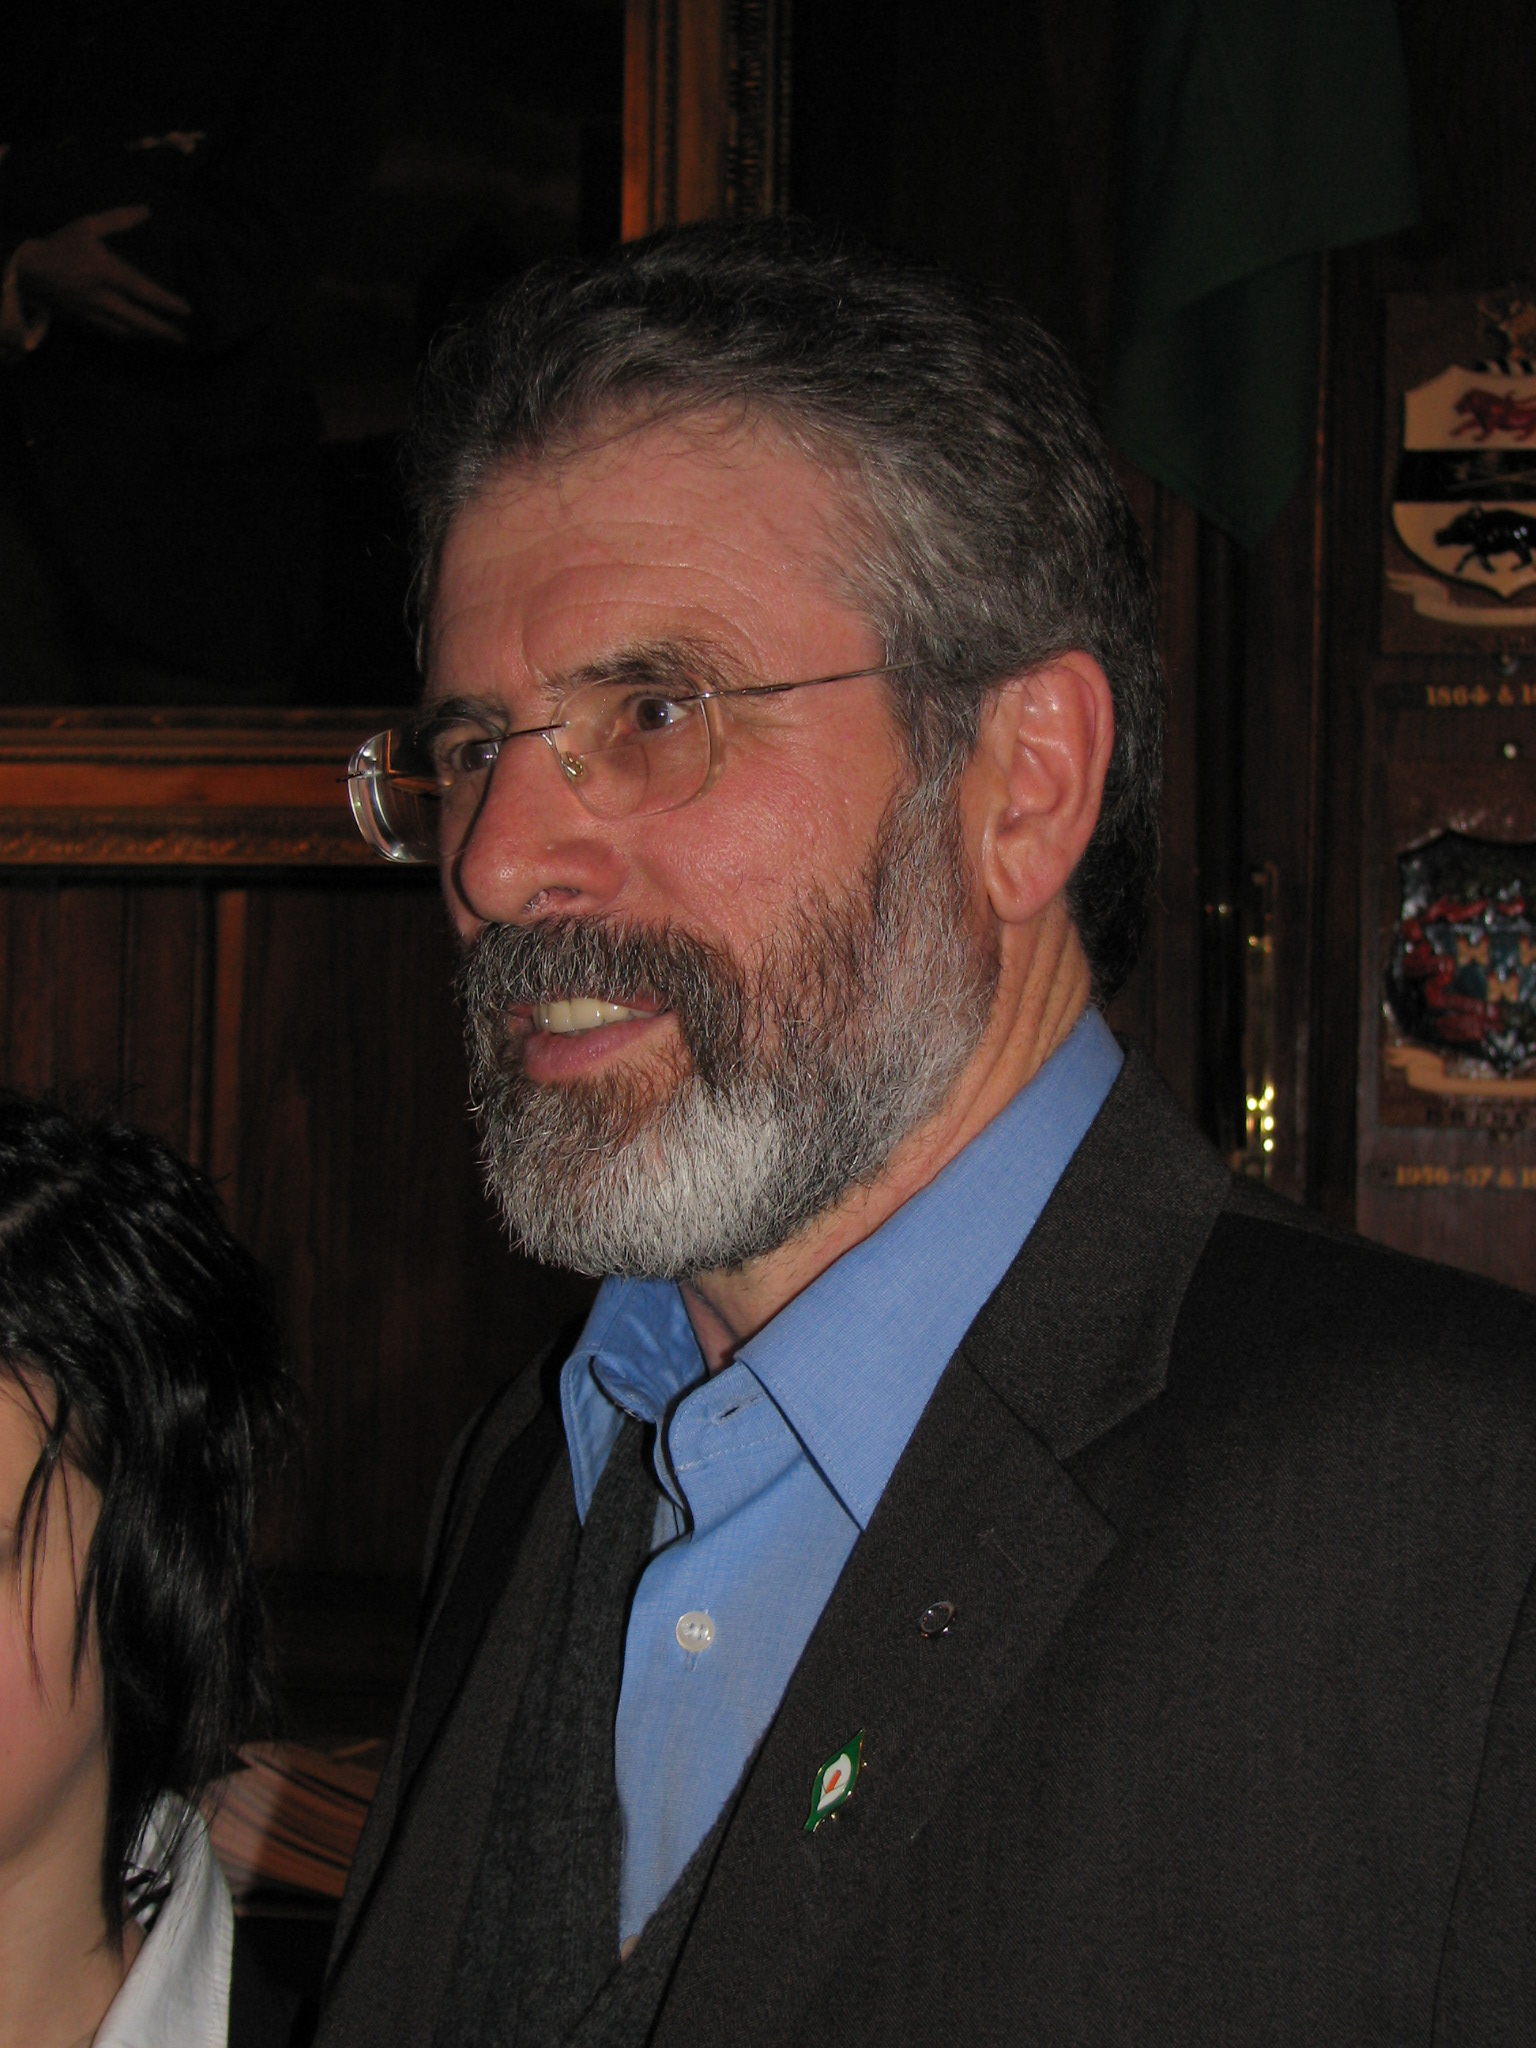 Gerry Adams Wikipedia